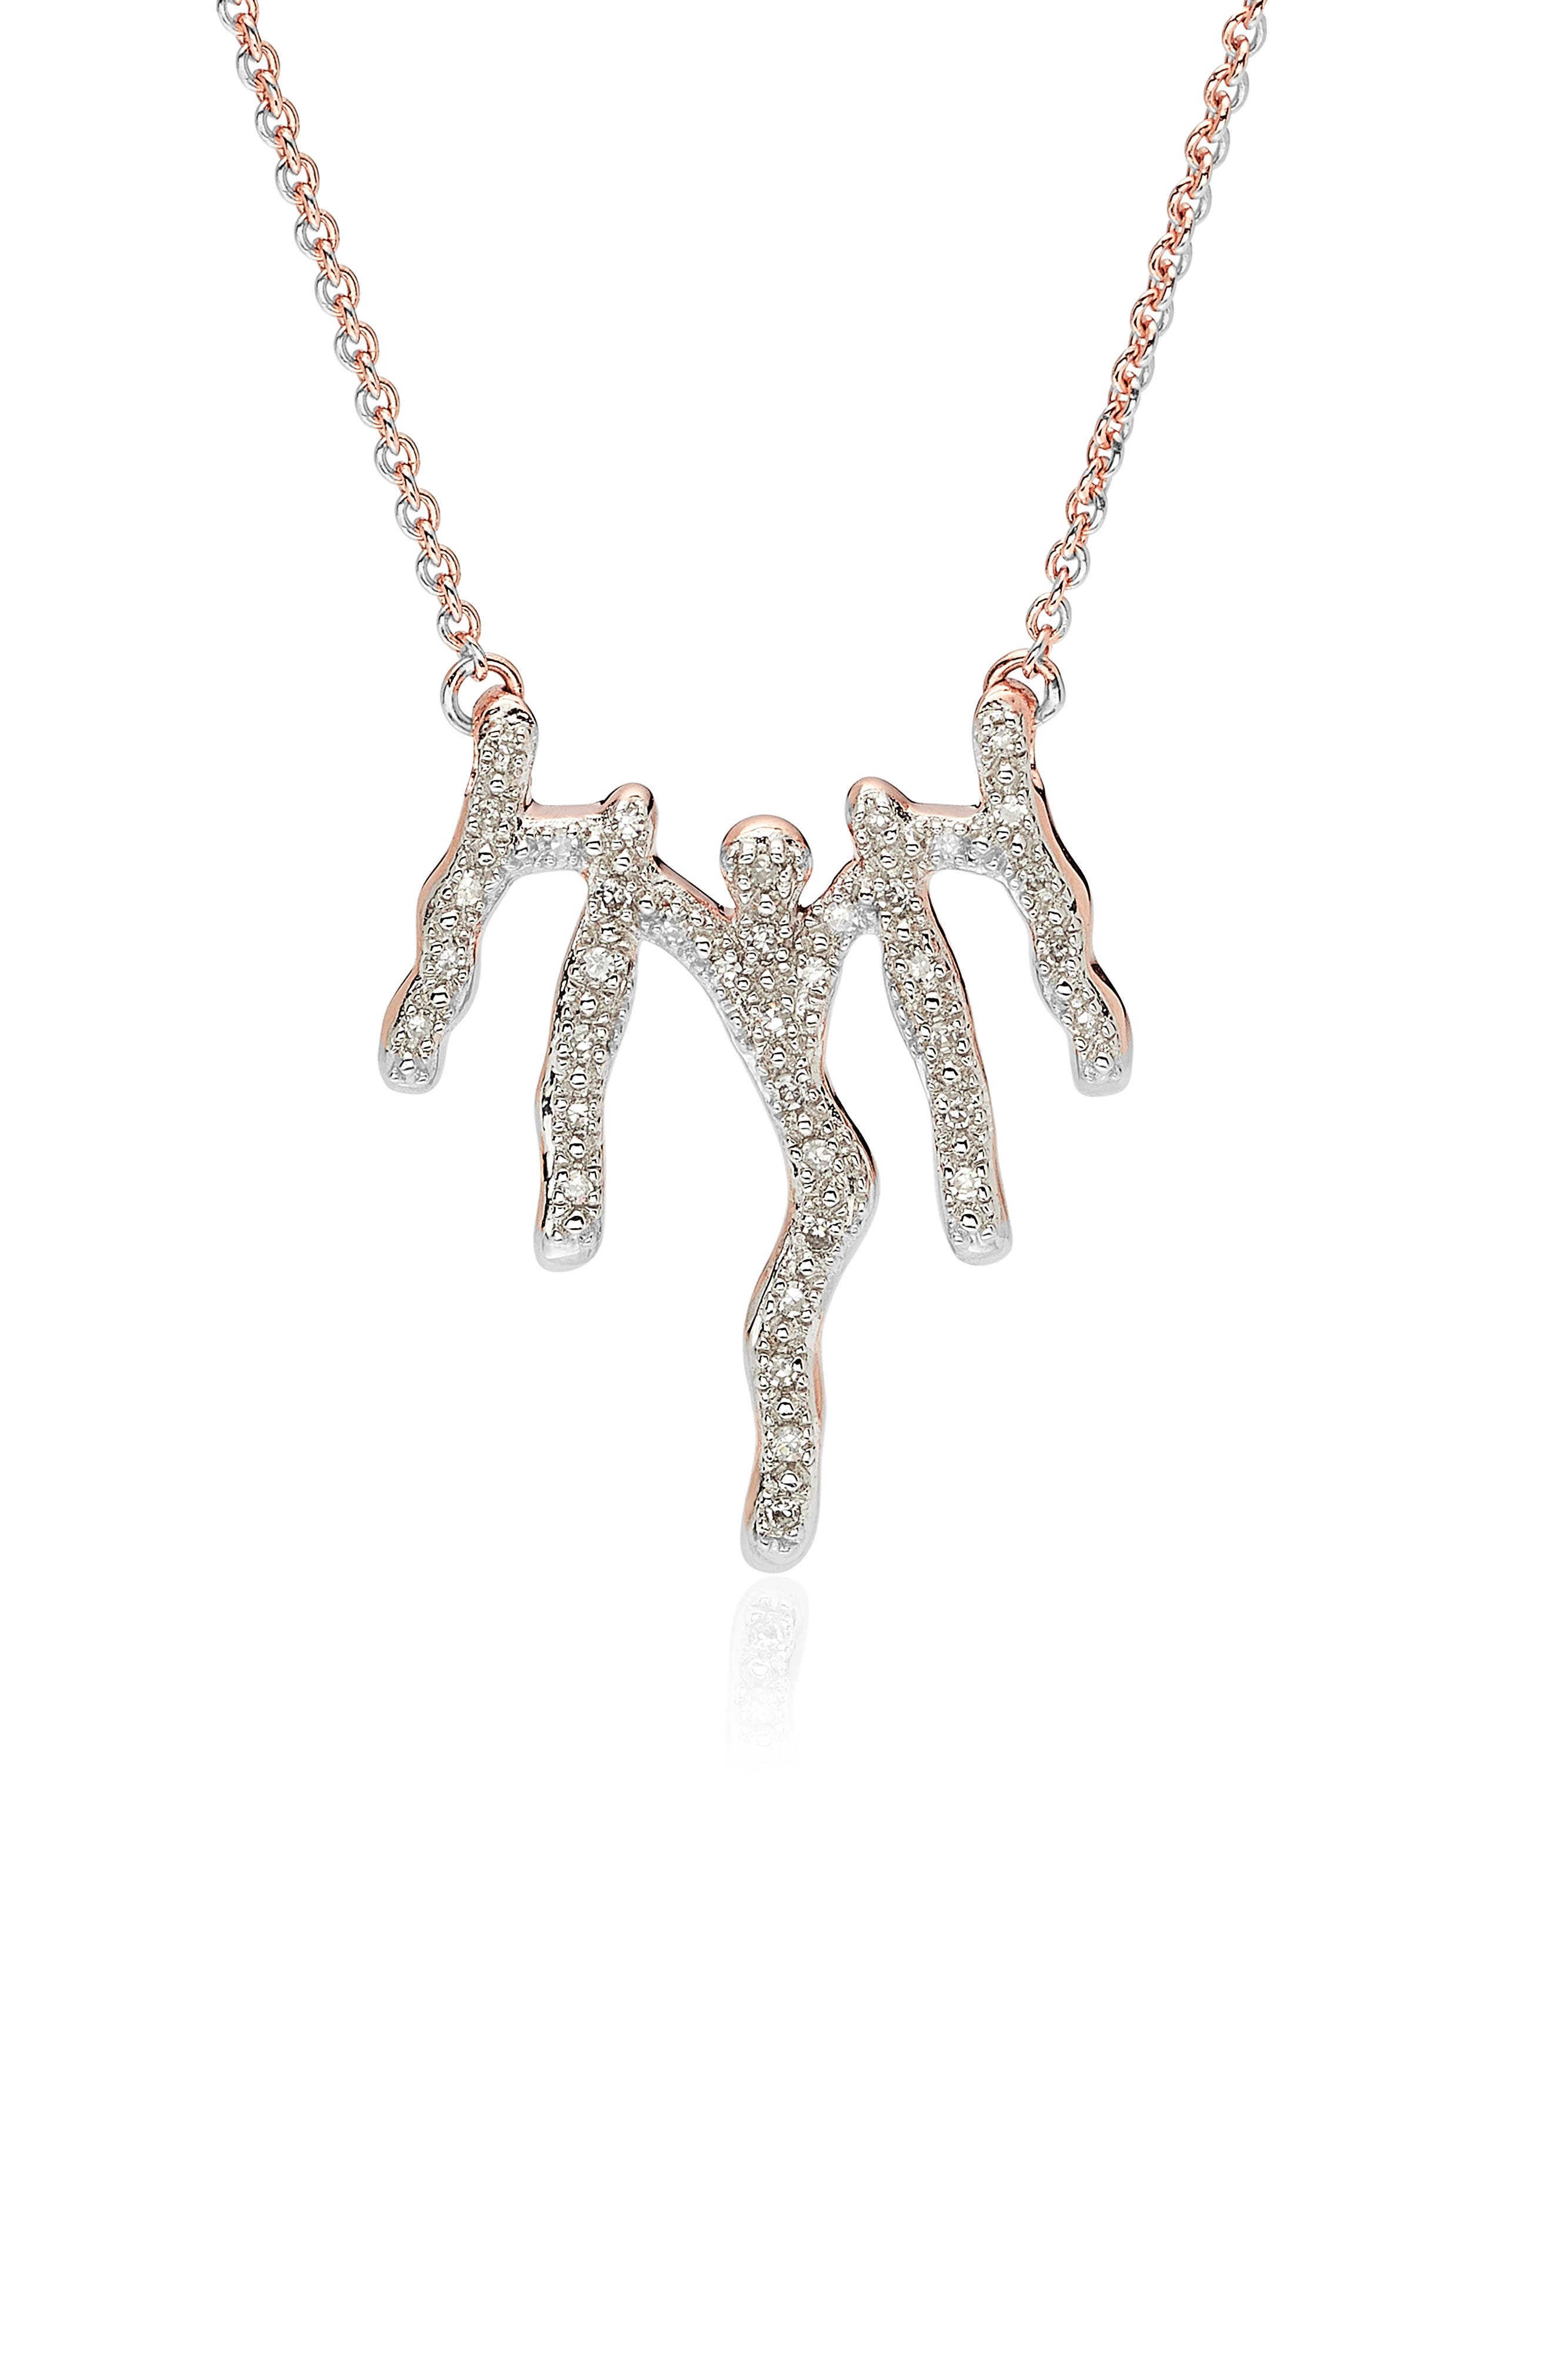 MONICA VINADER, Riva Waterfall Diamond Necklace, Main thumbnail 1, color, ROSE GOLD/ DIAMOND